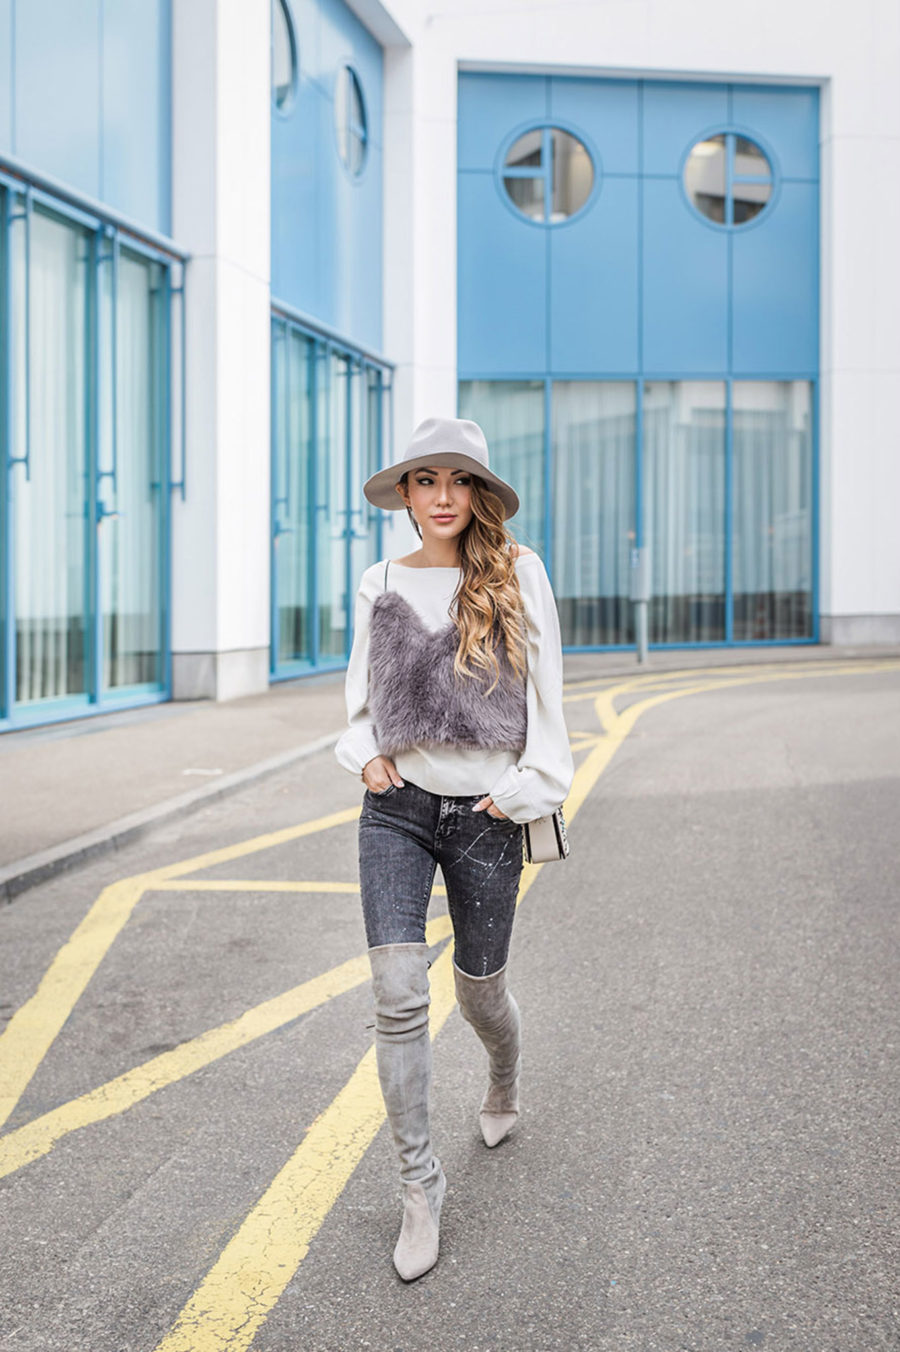 THIGHHIGH BOOTS - Tips for Styling Thigh High Boots - OTK Over the Knee Boots Winter Outfits, gray over the knee boots // NotJessFashion.com